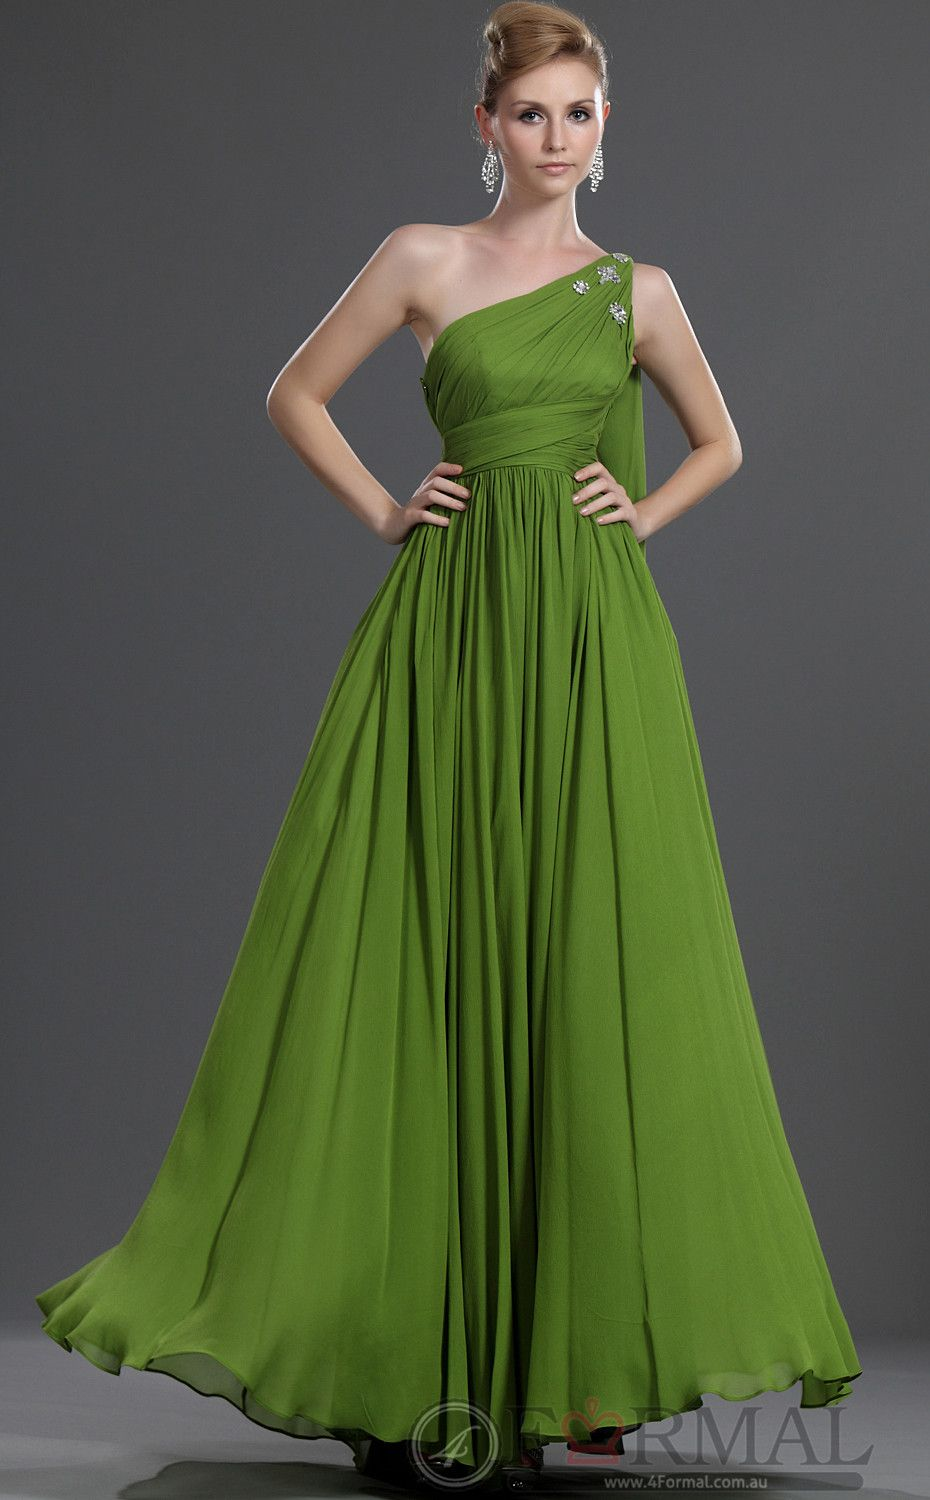 New one shoulder green long dress formal for party bdau at